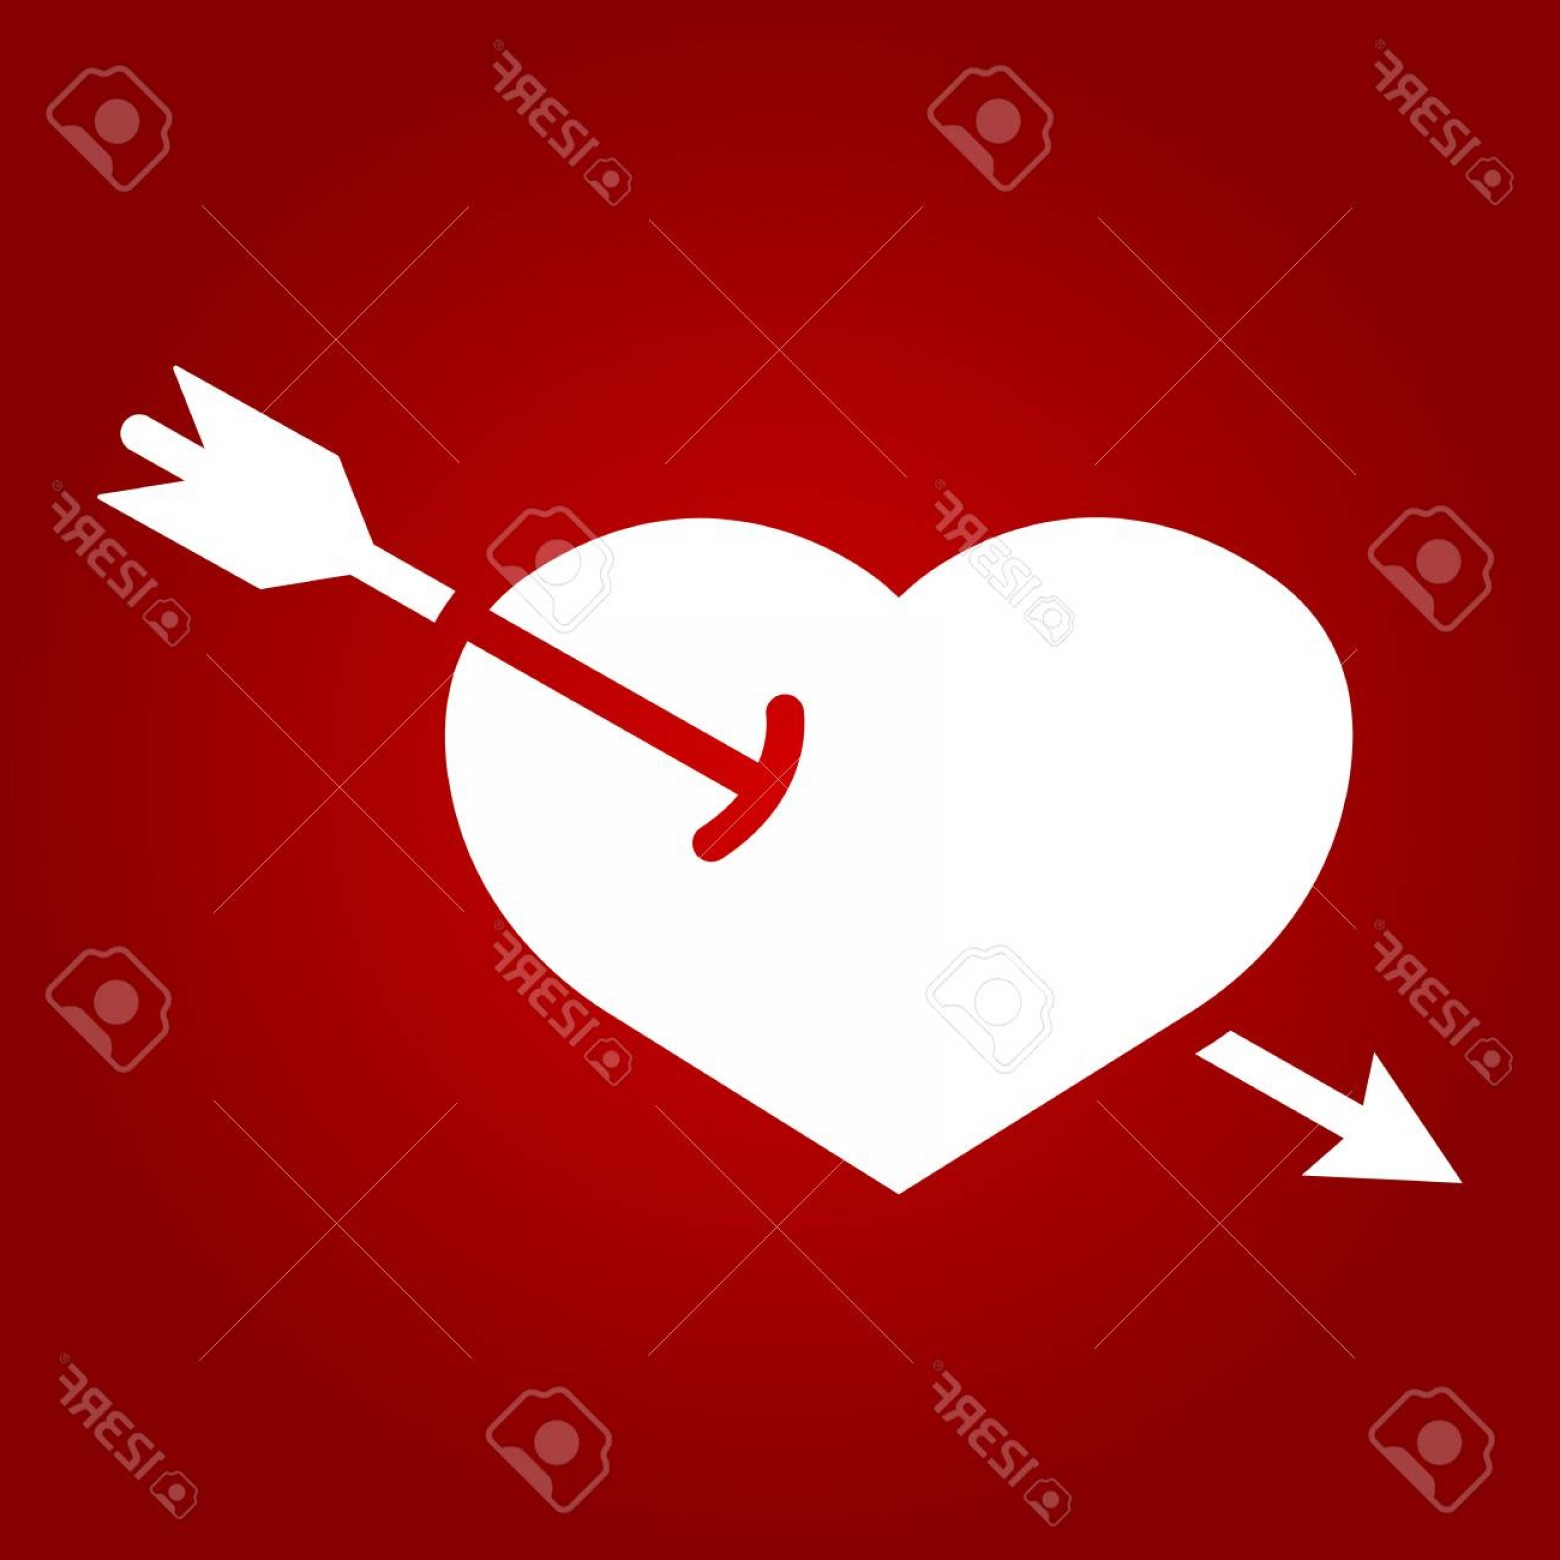 Solid Heart Vector Drawing: Photostock Vector Heart Pierced With Arrow Glyph Icon Valentines Day And Romantic Love Sign Vector Graphics A Solid Pa